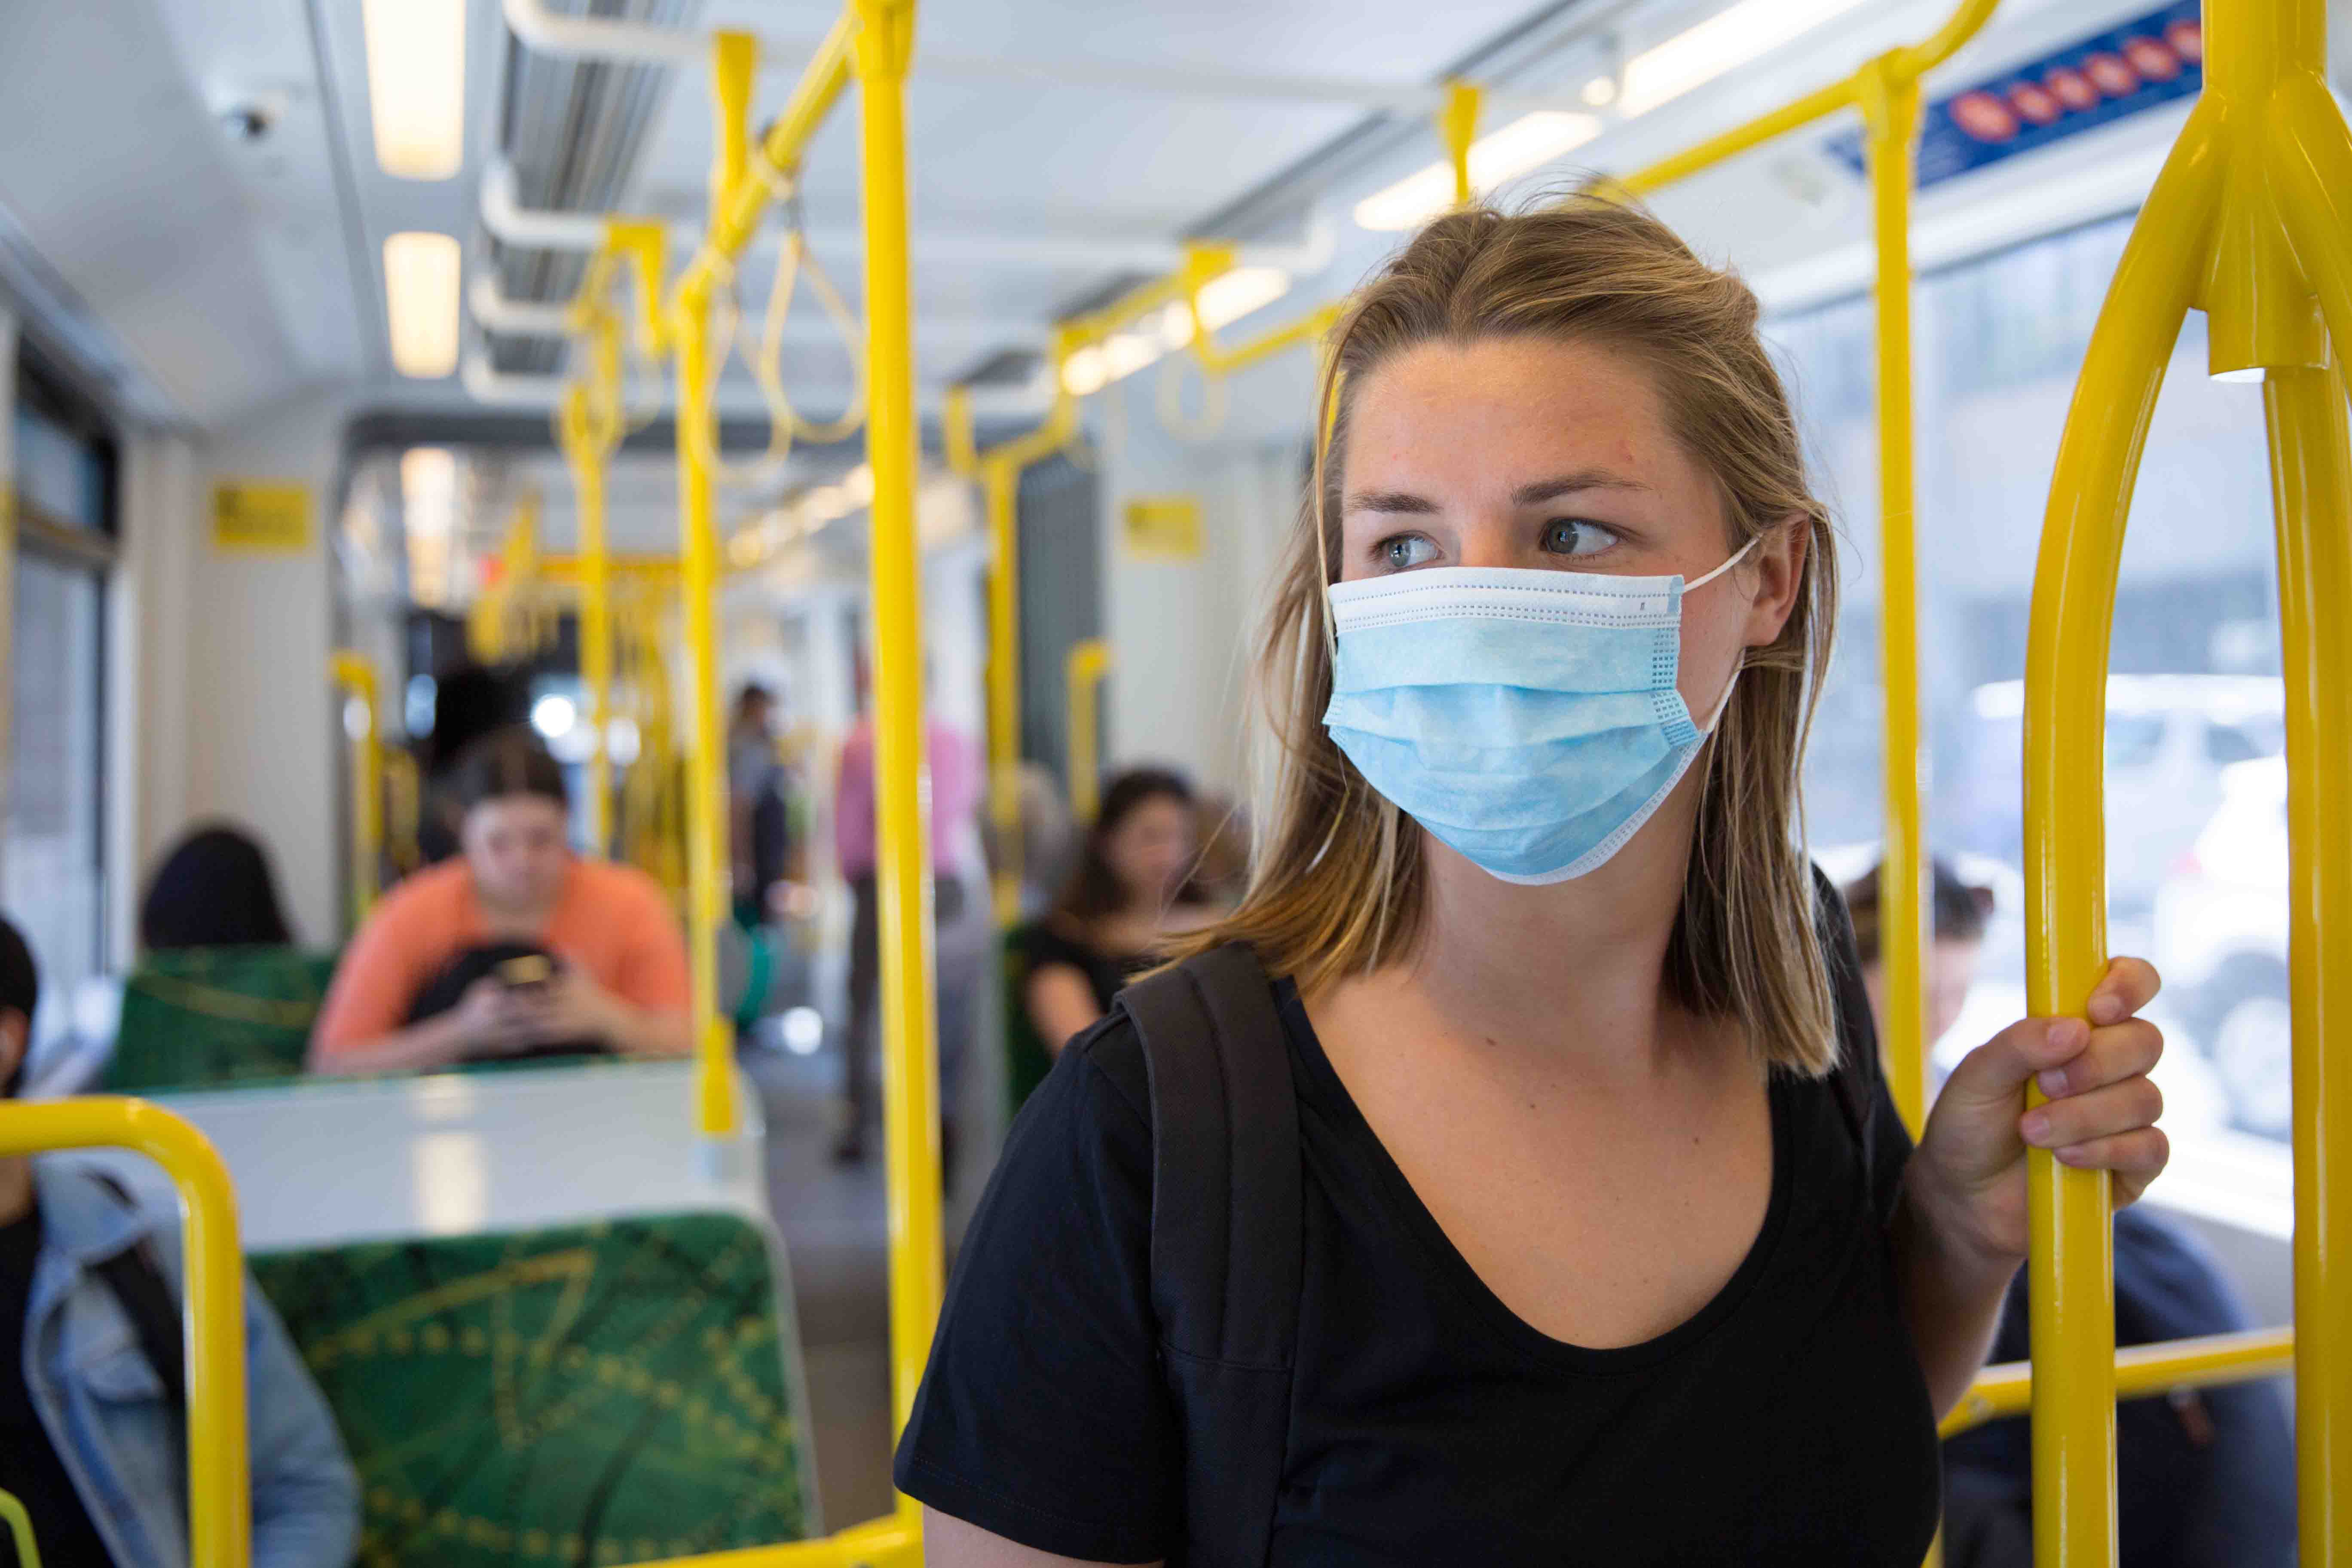 Image shows a woman on a tram wearing a surgical face mask during the COVID-19 pandemic.